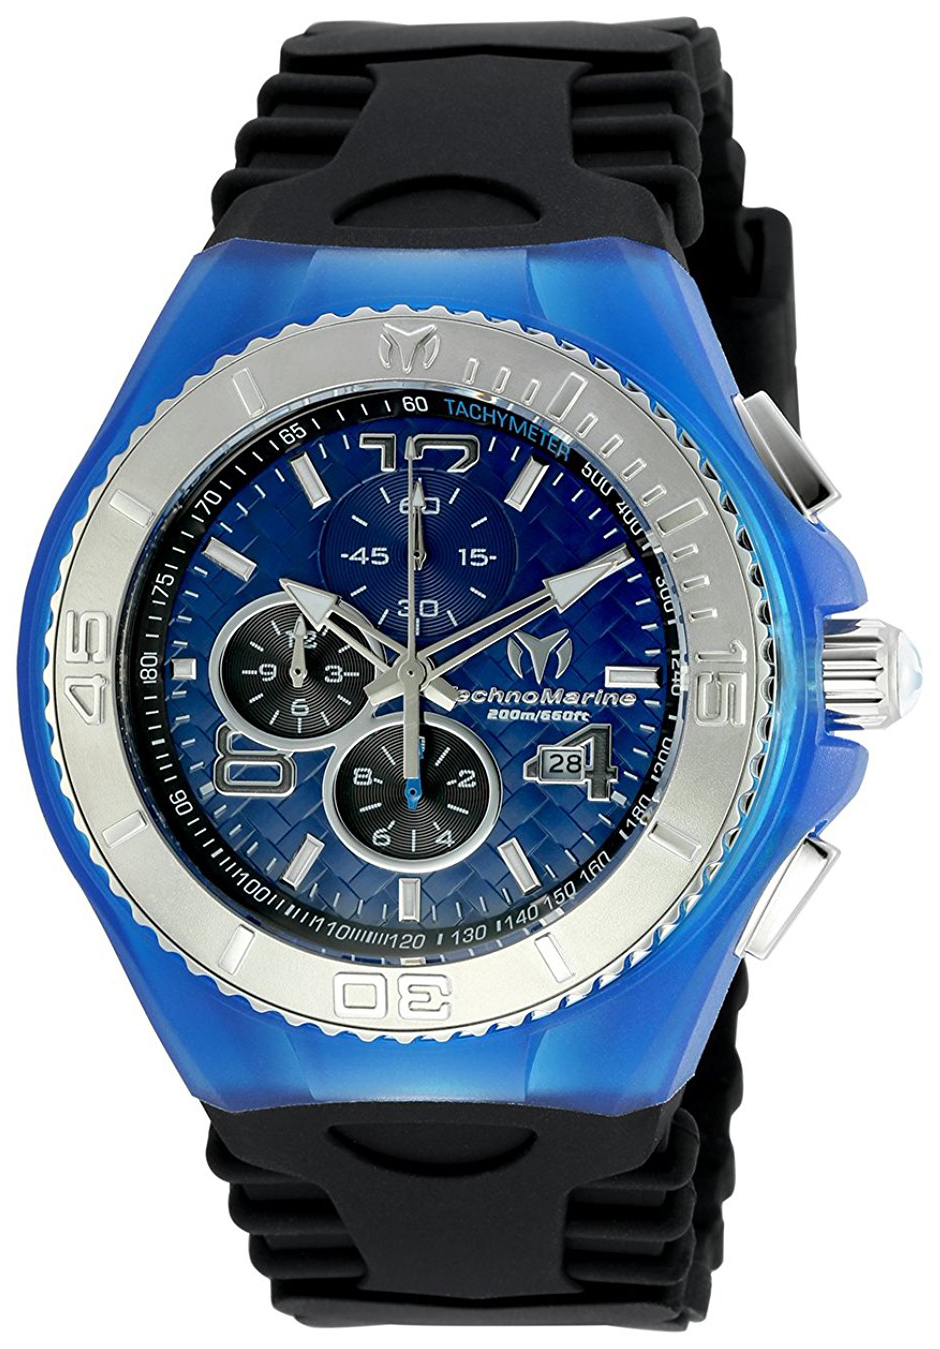 Technomarine Cruise Jellyfish Herrklocka TM-115114 Blå/Gummi Ø46 mm - Technomarine